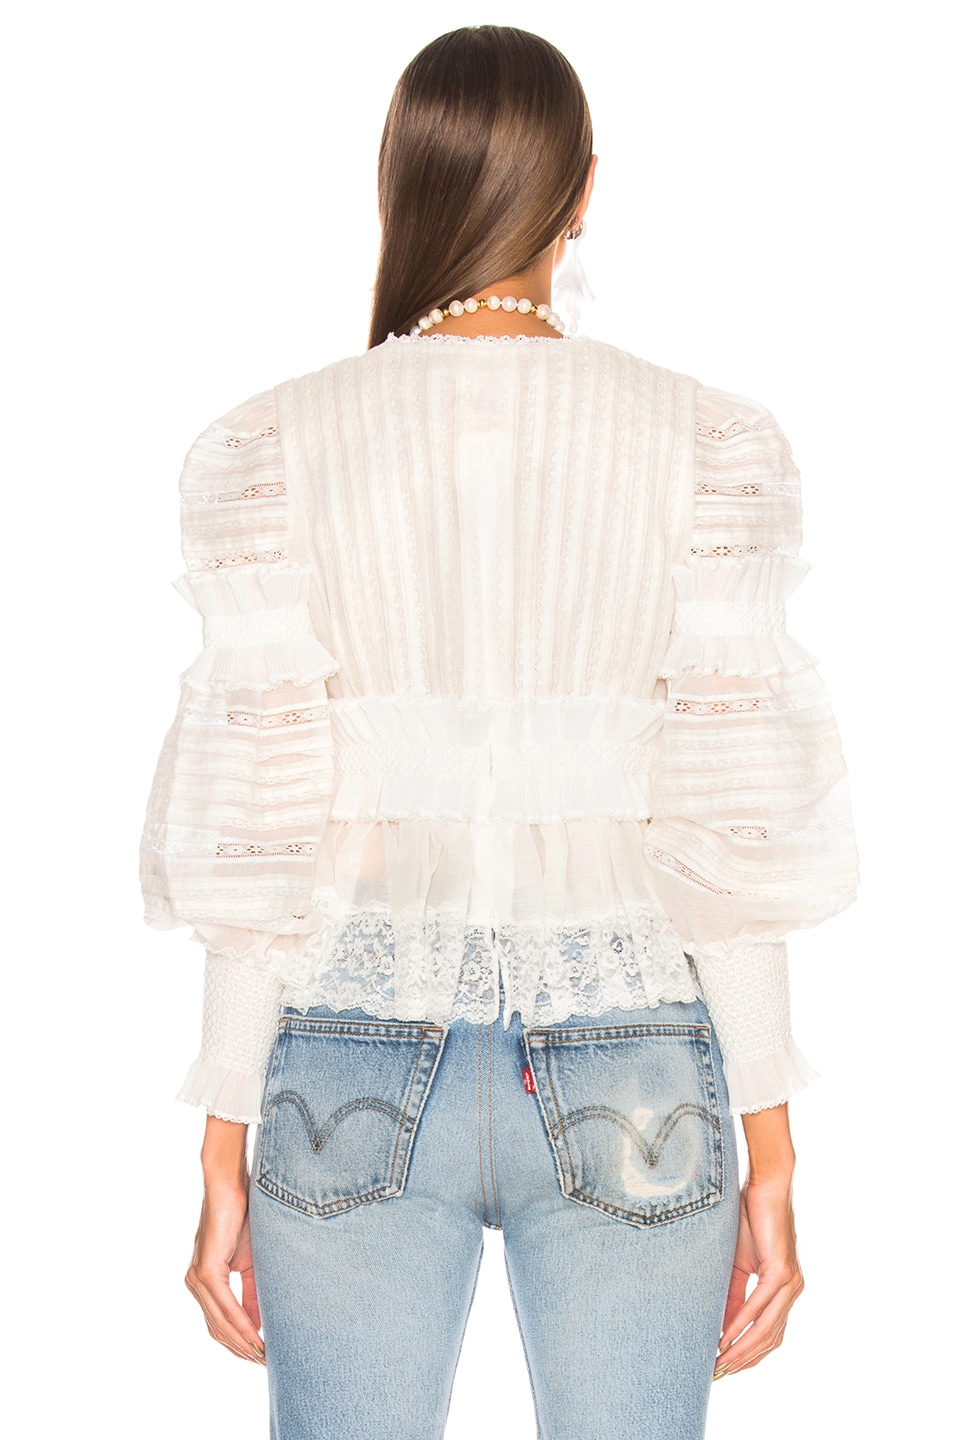 ab8814cee13b Image 3 of Zimmermann Sunny Smocked Peplum Top in White